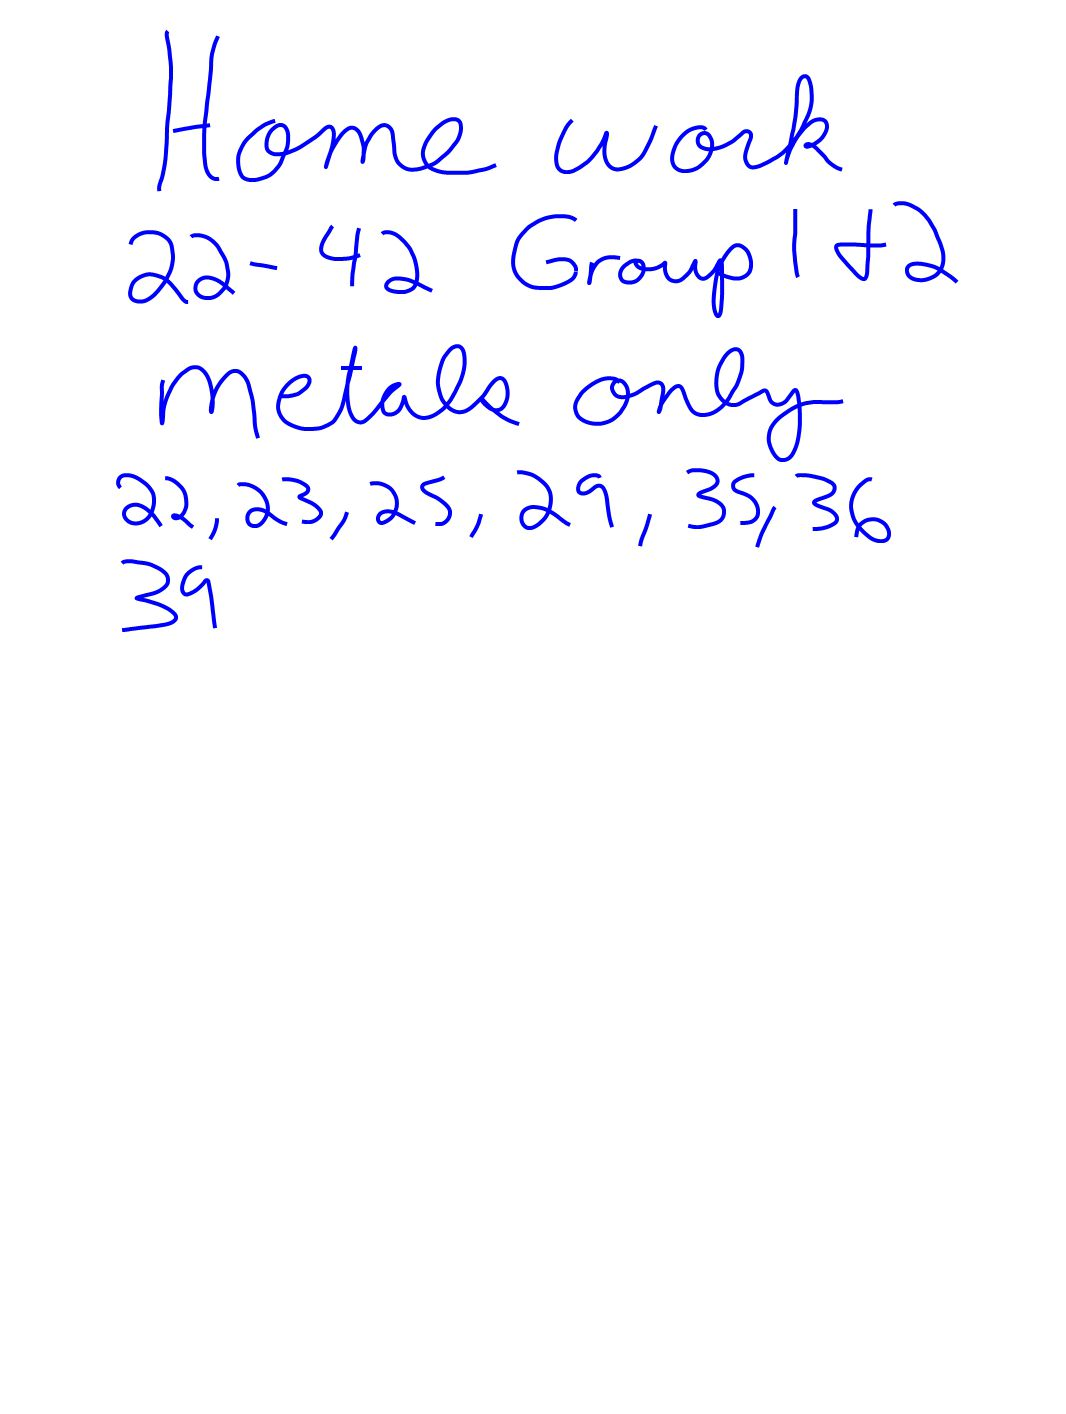 FeCl 2 FeCl 3 CrF 2 PbO Roman Numerals are needed here, because these contain Transition Metals.